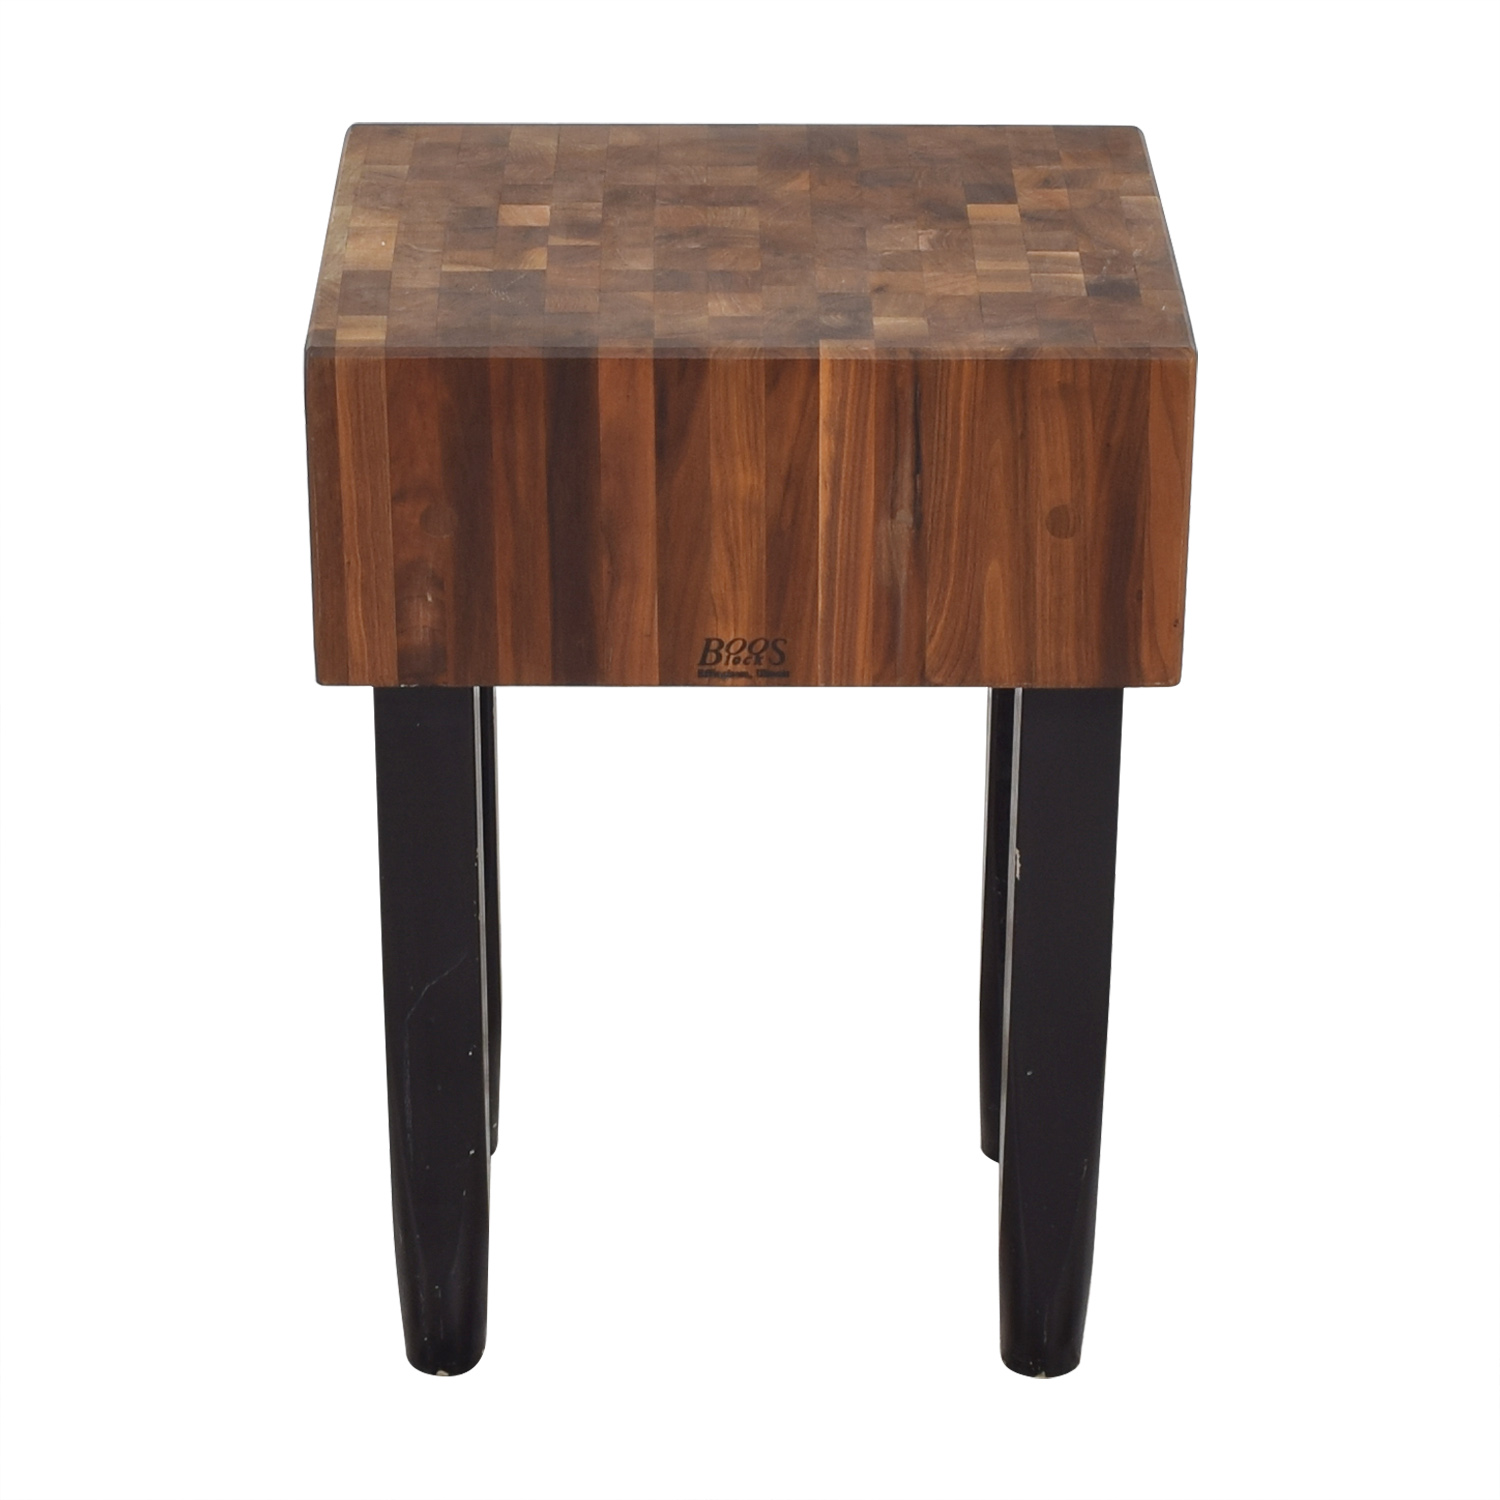 John Boos John Boos Pro Chef Butcher Block dark brown and black